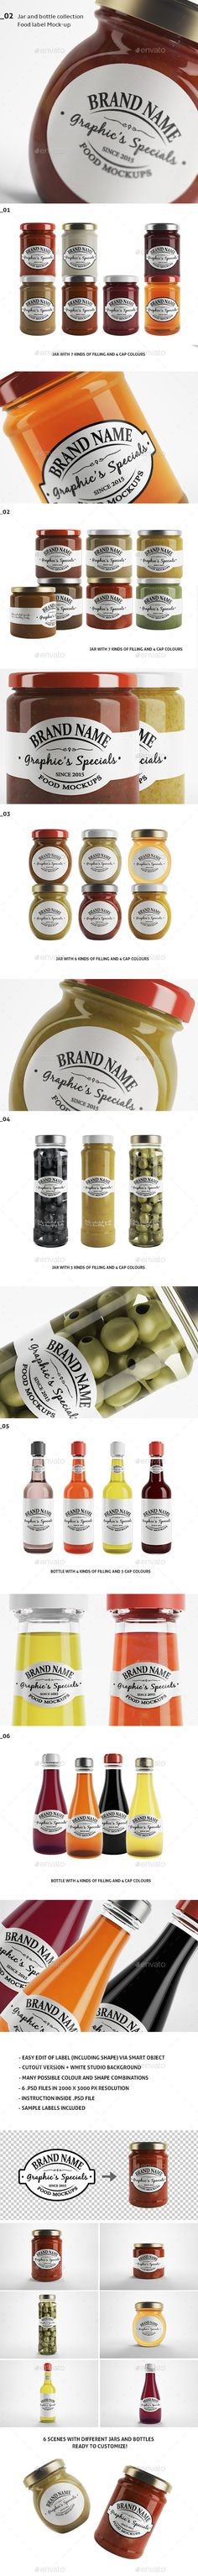 Jar & Bottle Label Logo Mockup #design Download: http://graphicriver.net/item/jar-bottle-label-logo-mockup/12899615?ref=ksioks